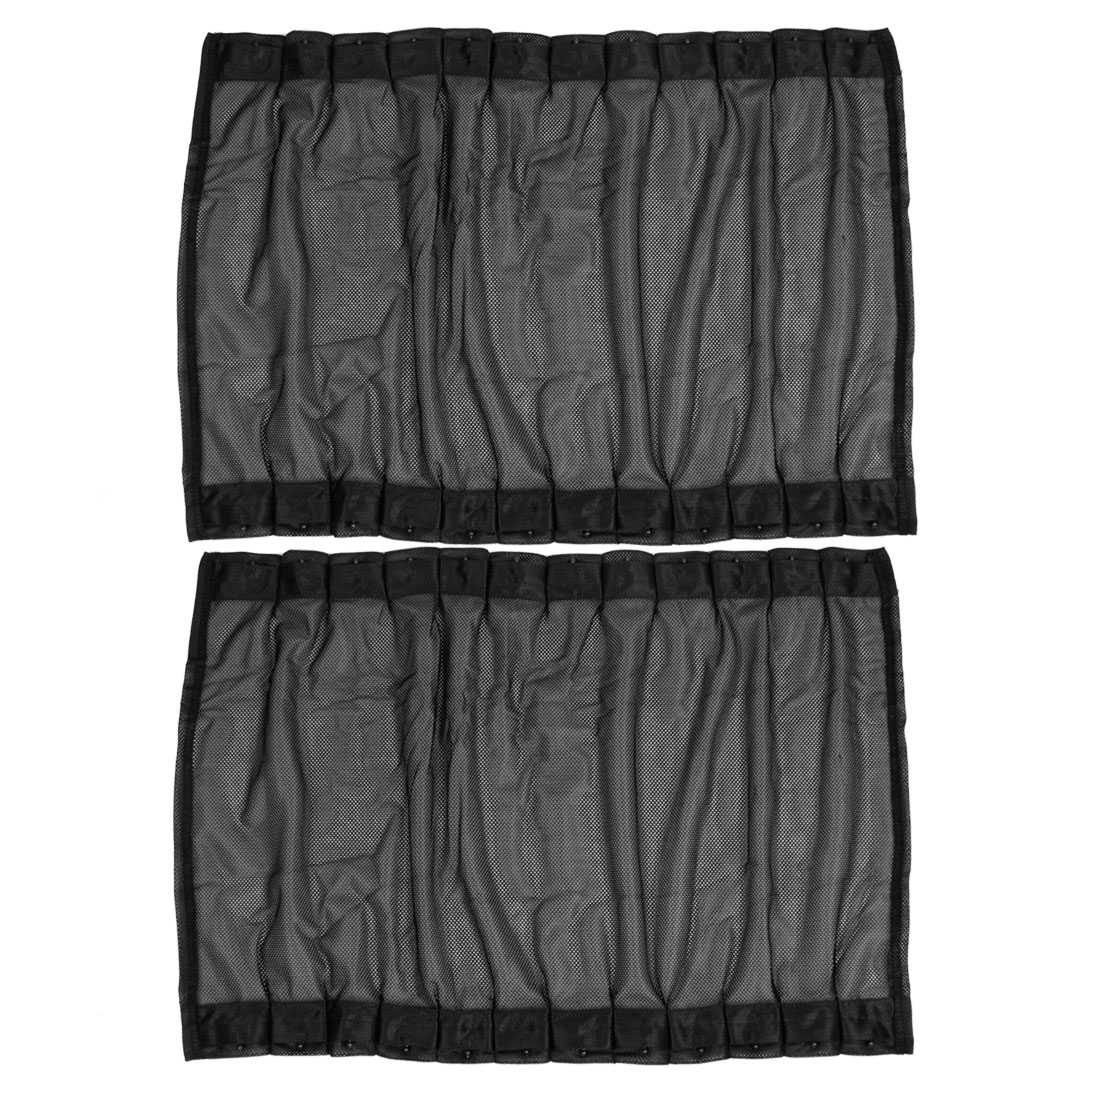 2PCS Black Nylon Mesh Side Rear Window Curtains Shade 60cm x 43cm for Auto Car